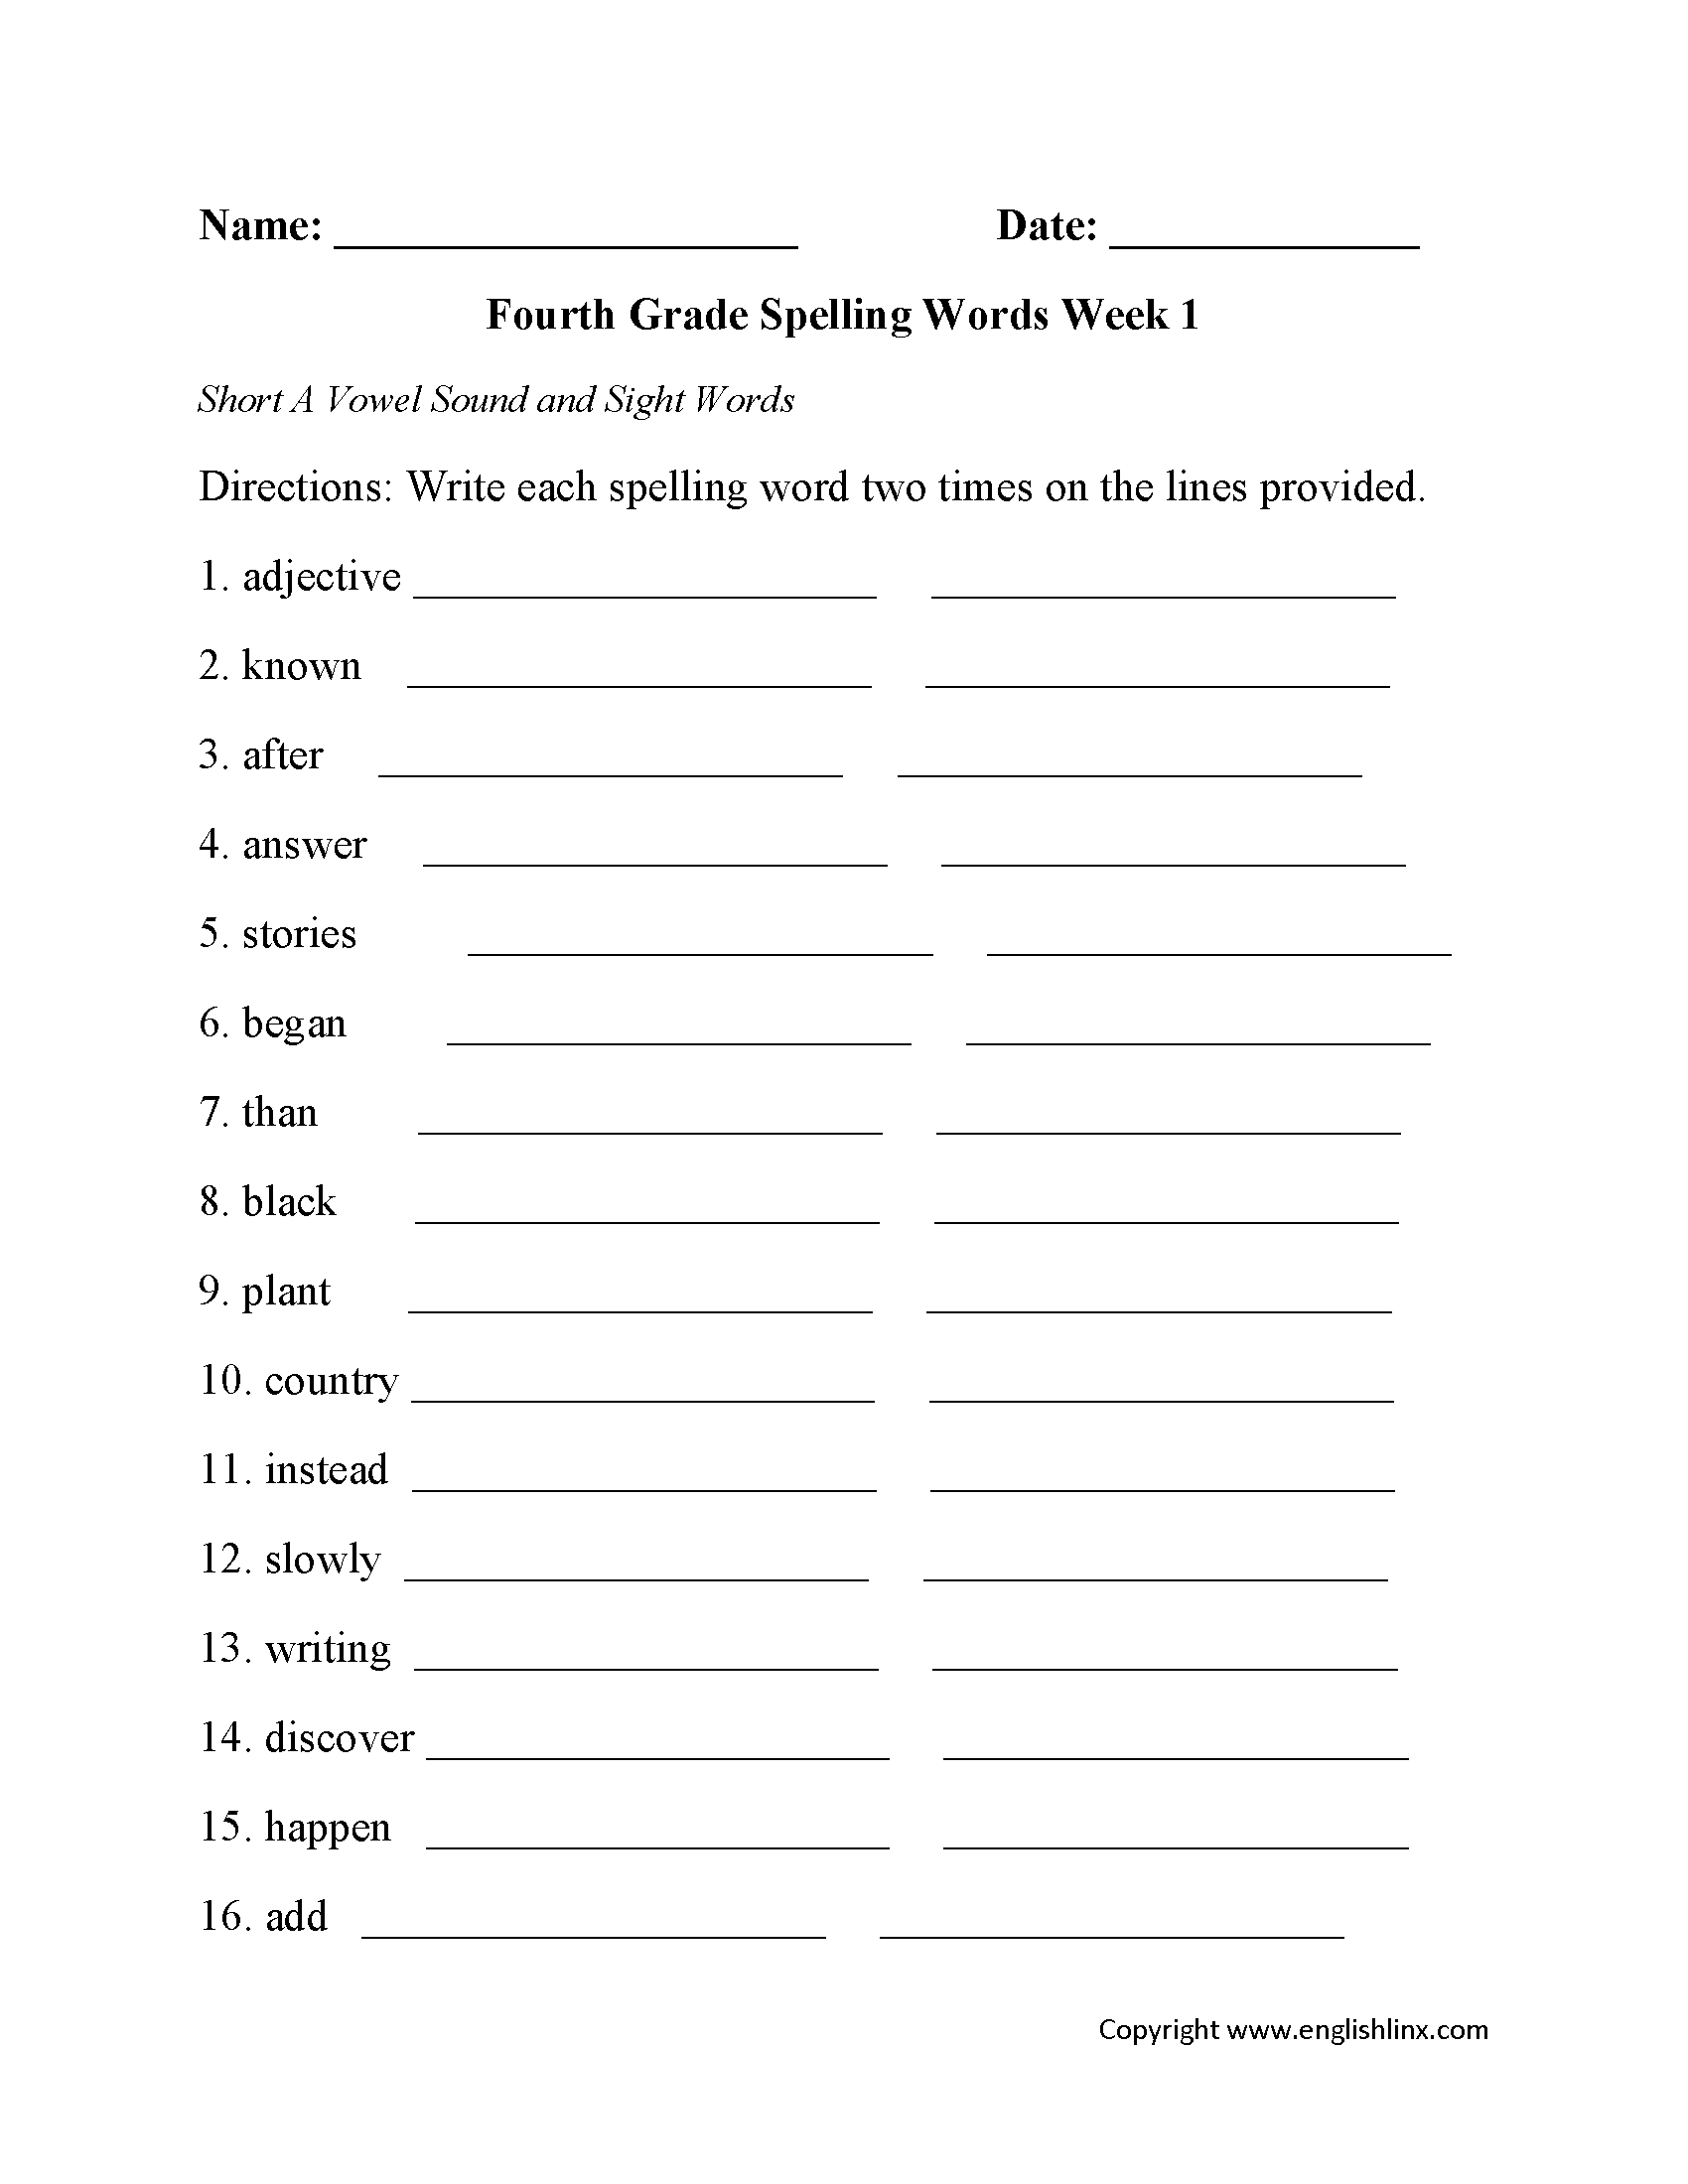 Spelling Worksheets | Fourth Grade Spelling Worksheets | Create Spelling Worksheets Printable